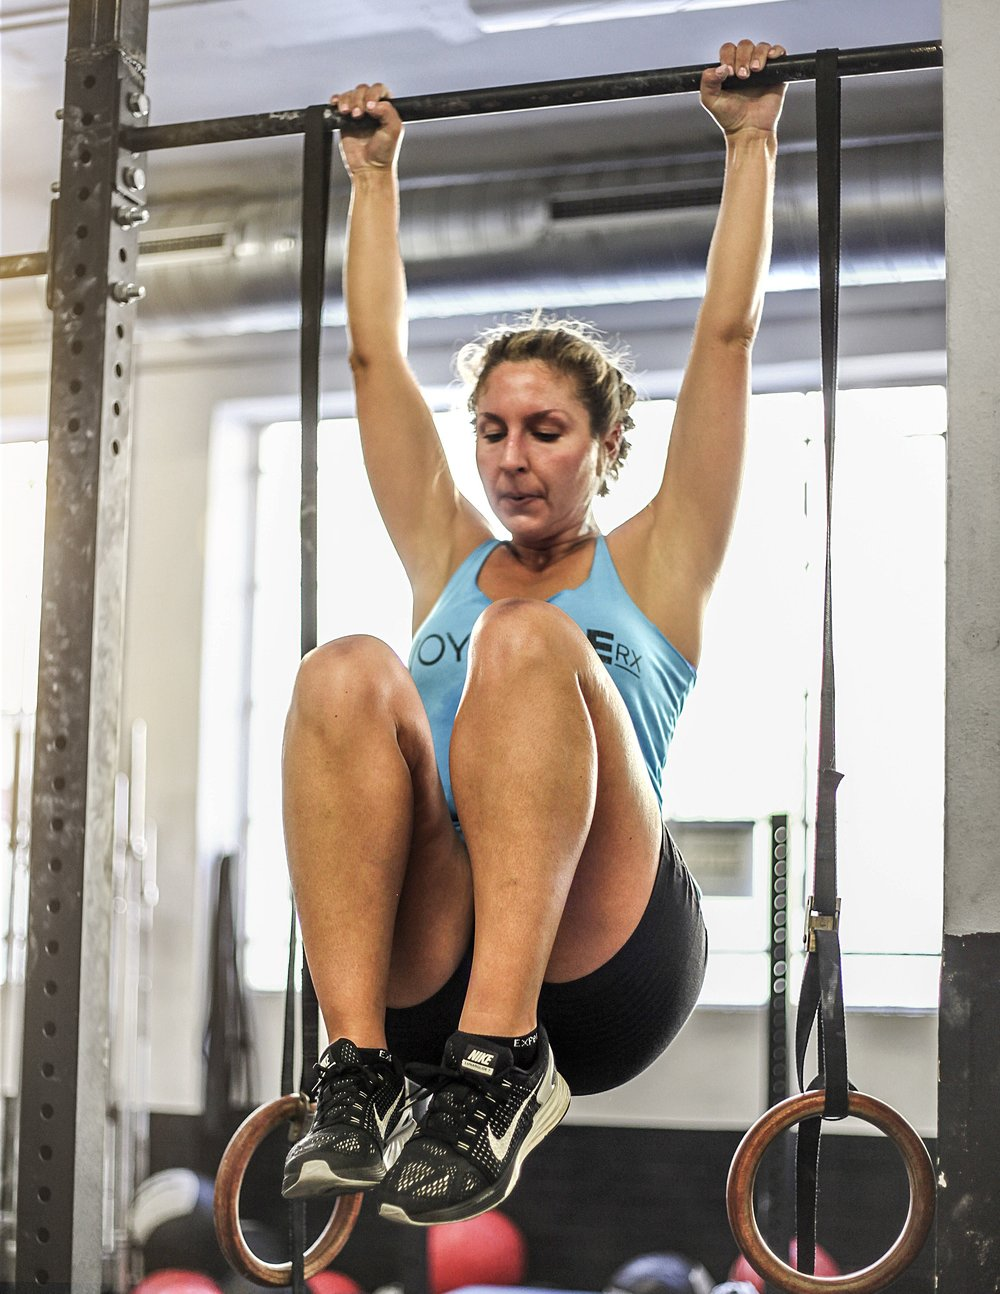 April utilizing her lats doing knees to chest at CrossFit M1 in Milan during our Northern Italy/Switzerland Tour!